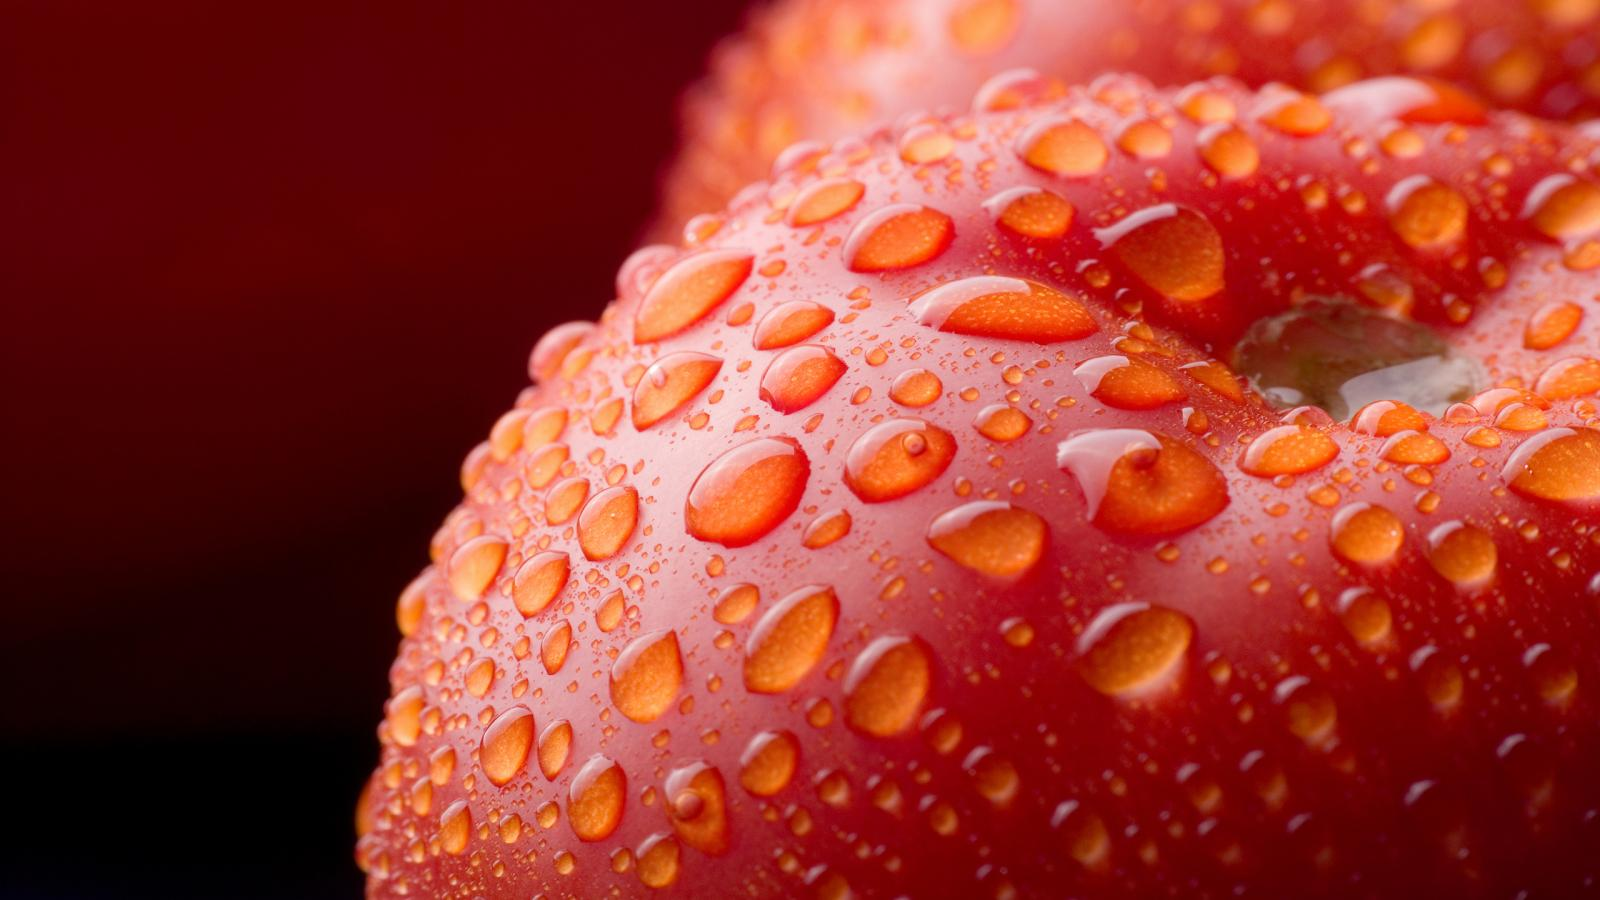 and vegetable dowload desktop picture of fruit and vegetable wallpaper 1600x900